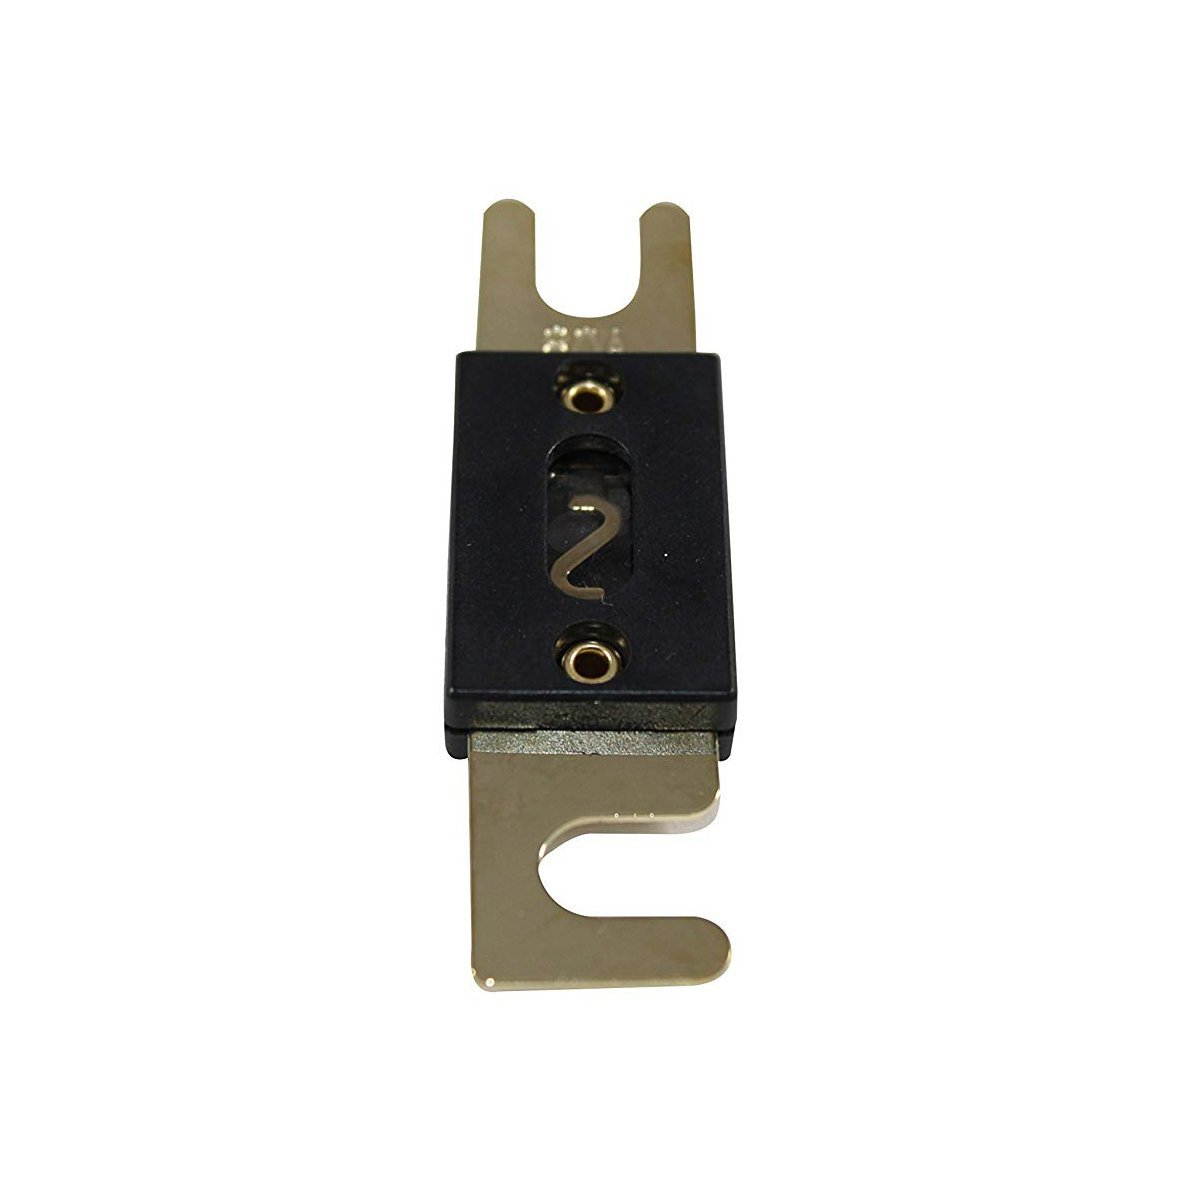 5Pcs//lot ANL Fuse 200 Amp Gold Plated ANL Fuse 200A